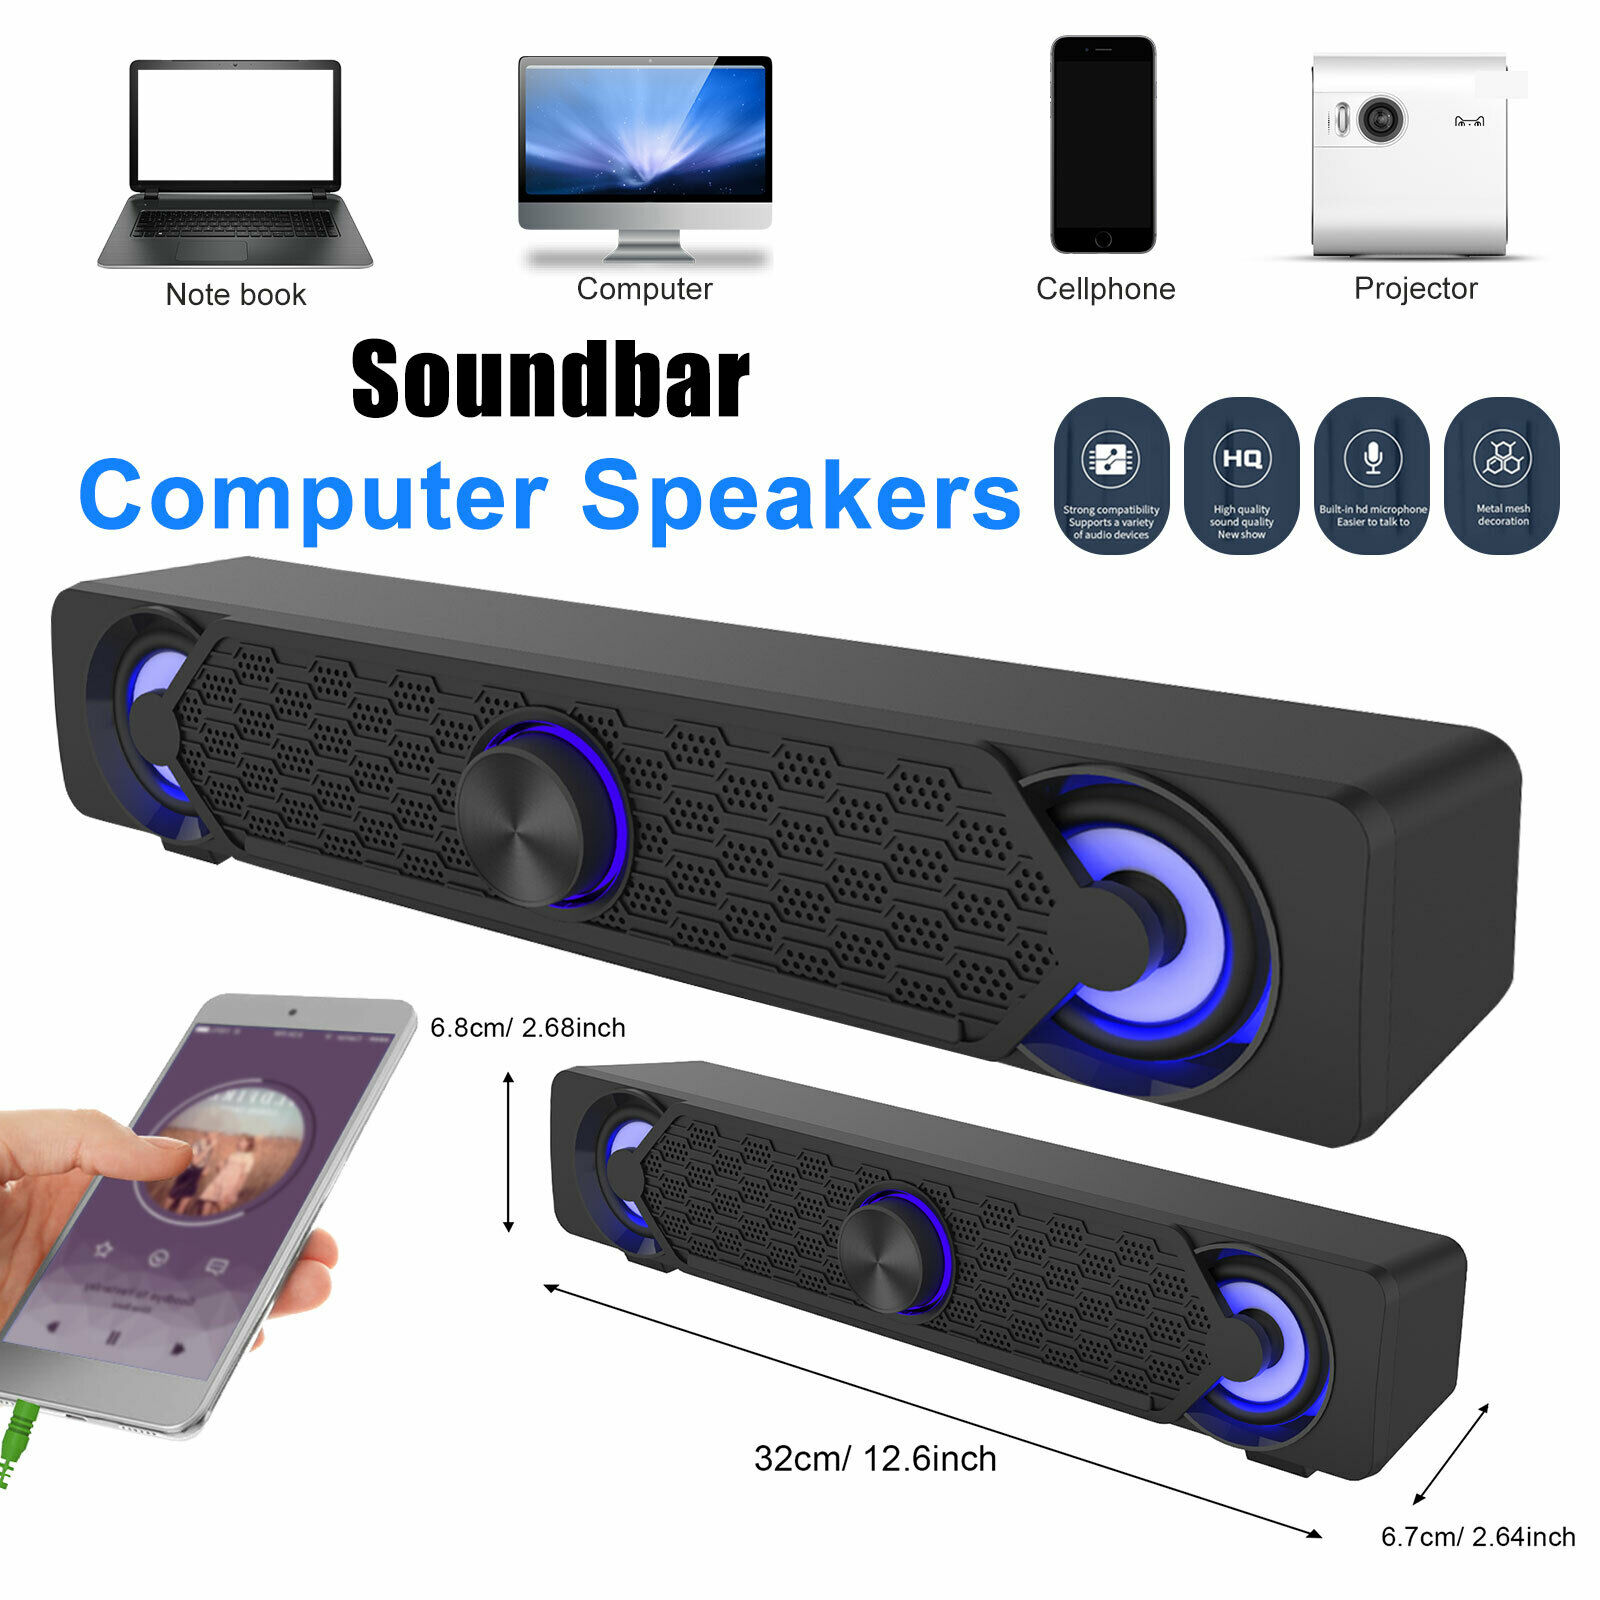 Stereo Sound Bar USB Powered LED Computer Speaker 3.5mm For PC Desktop Laptop. Buy it now for 29.48